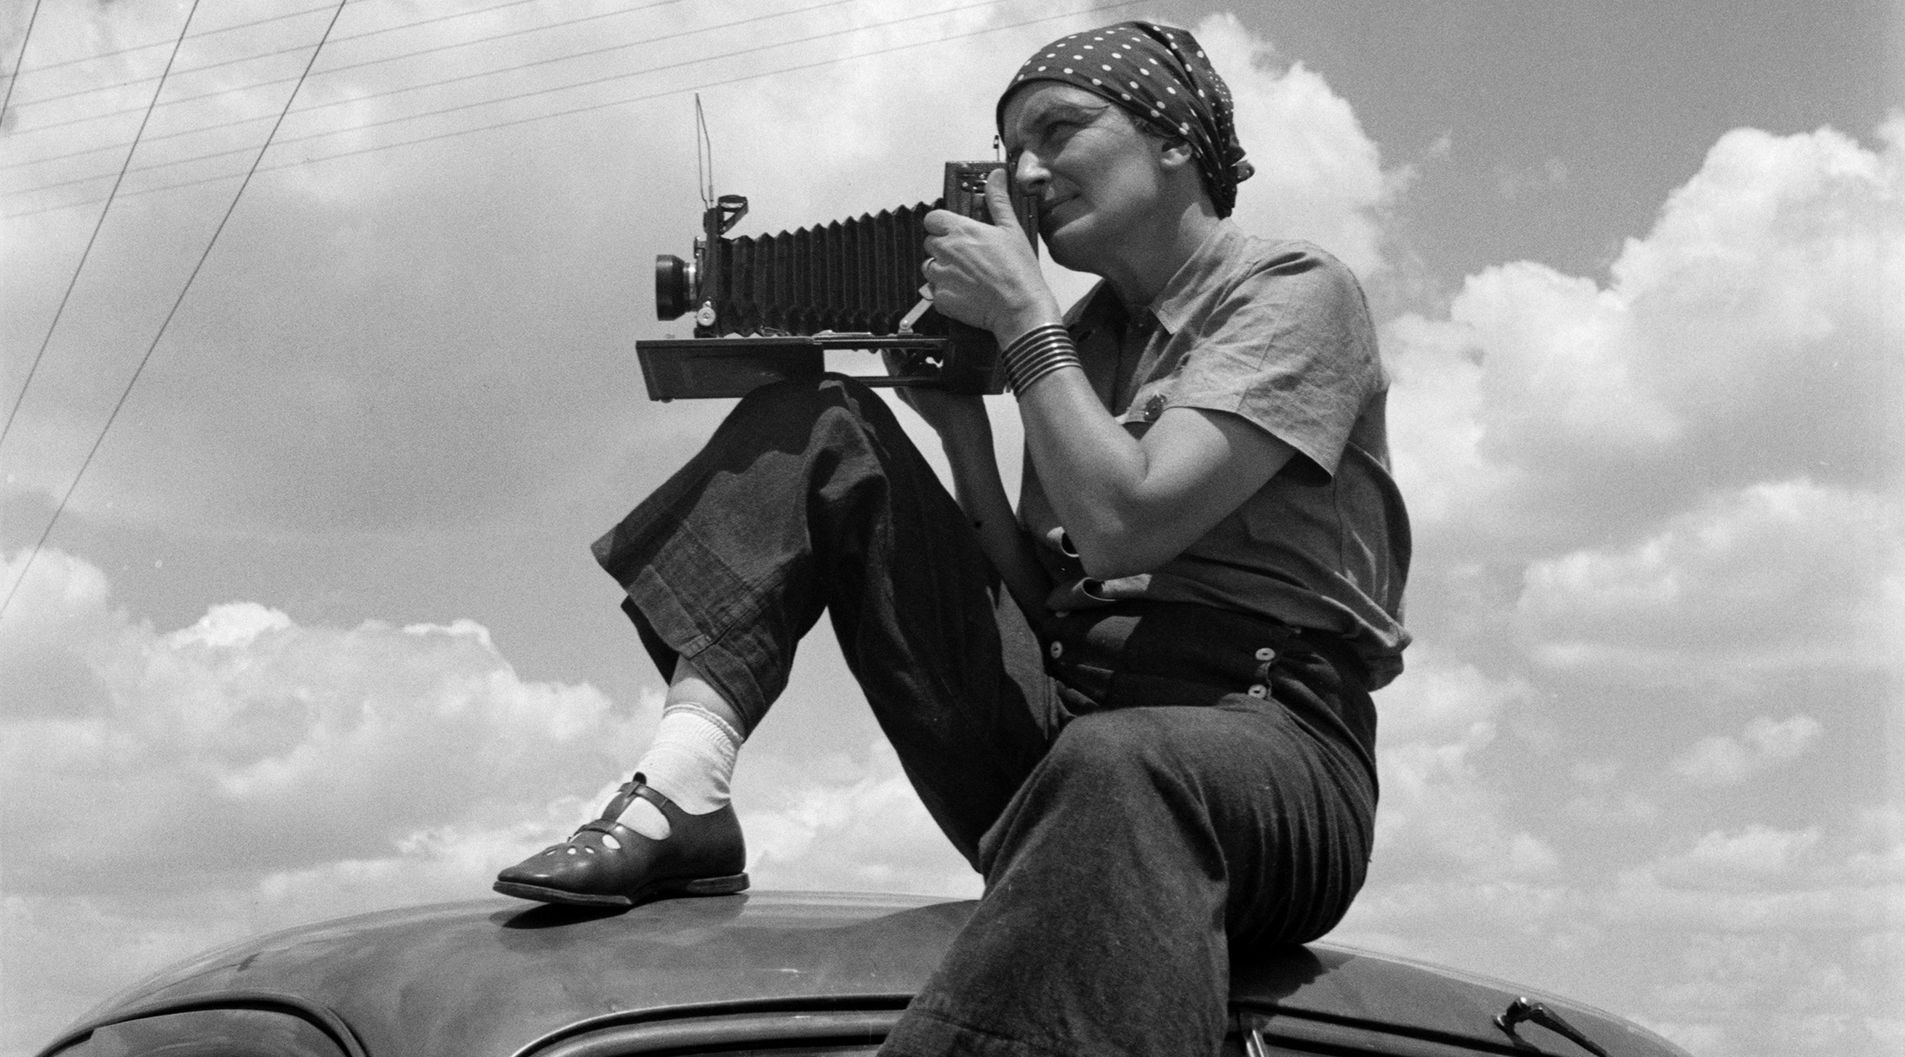 Photography and Social Change: Dorothea Lange and the Politics of Seeing